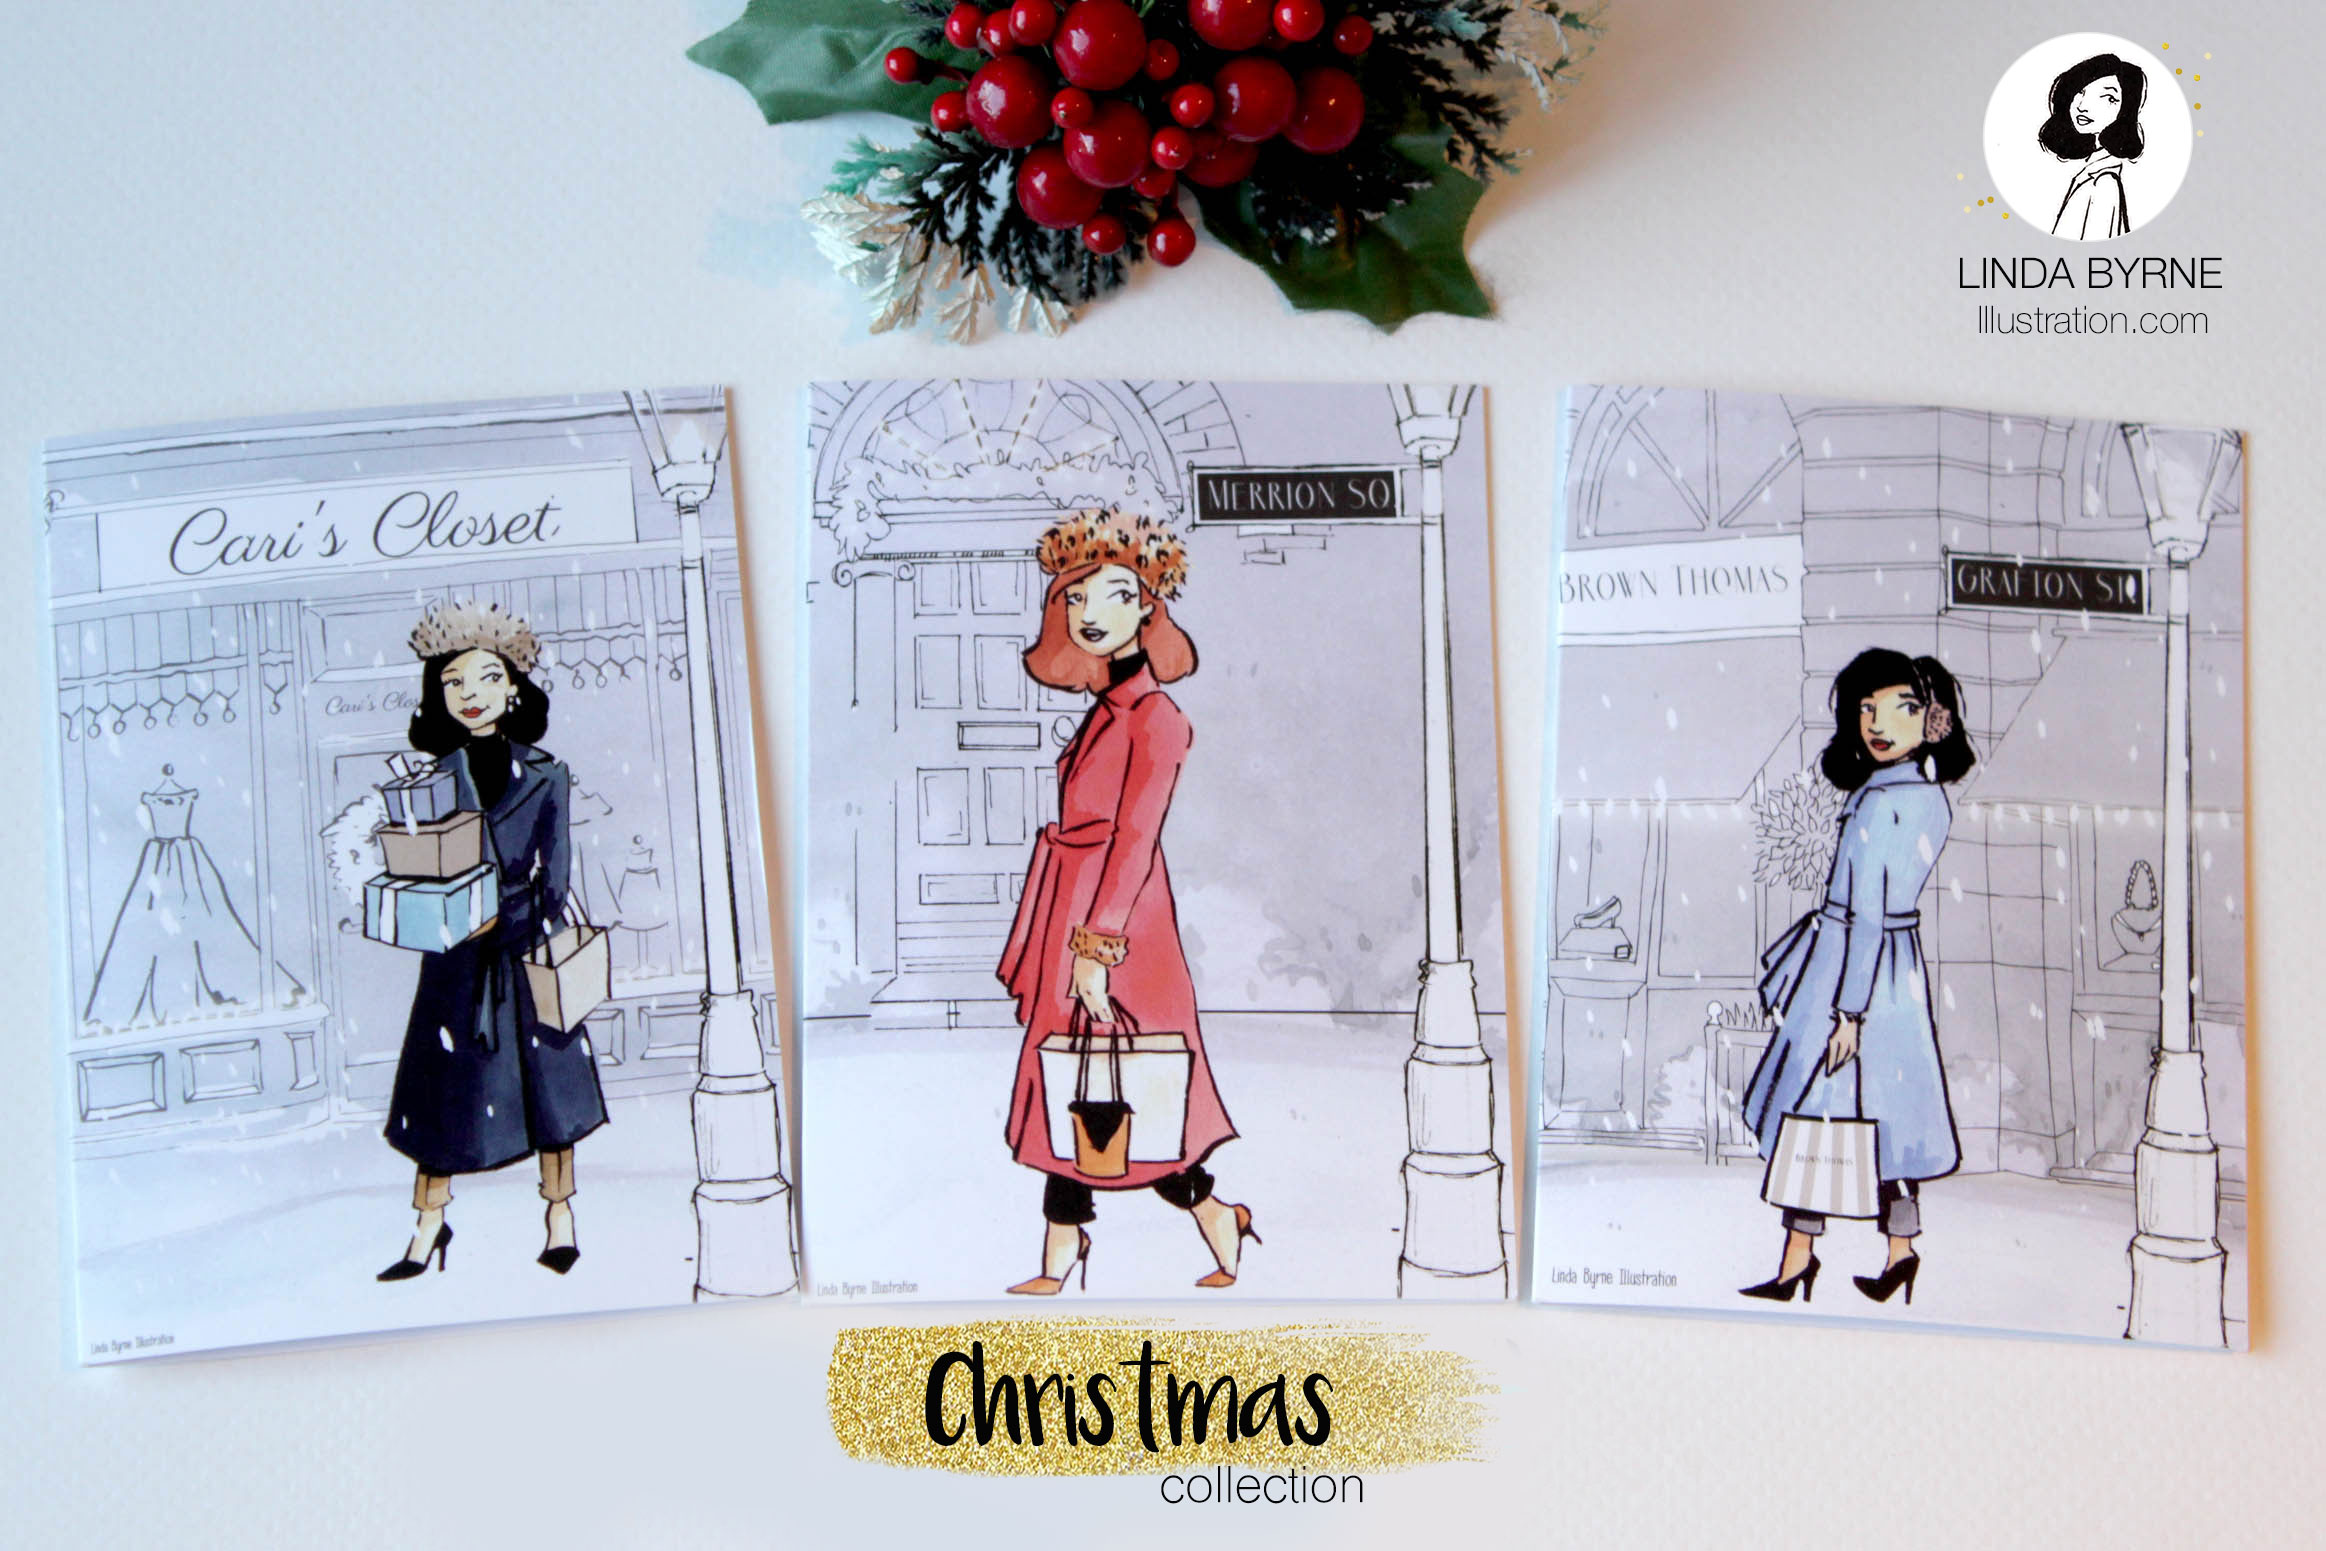 Product Launch Christmas Greeting Card Collection Linda Byrne